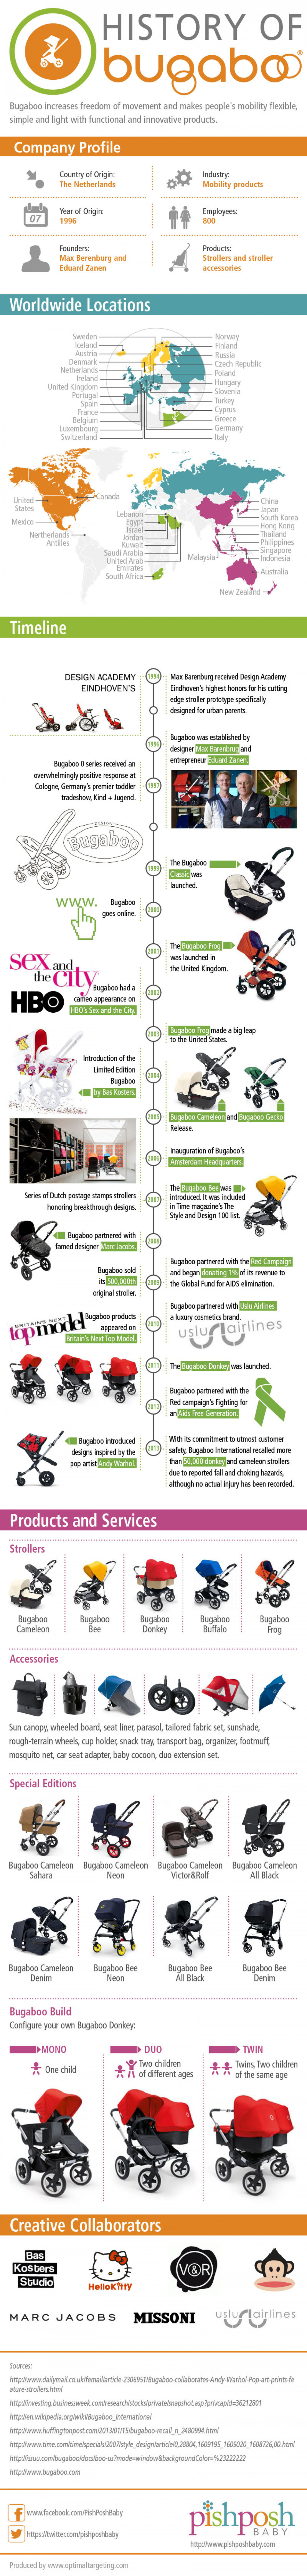 The History of Bugaboo Infographic